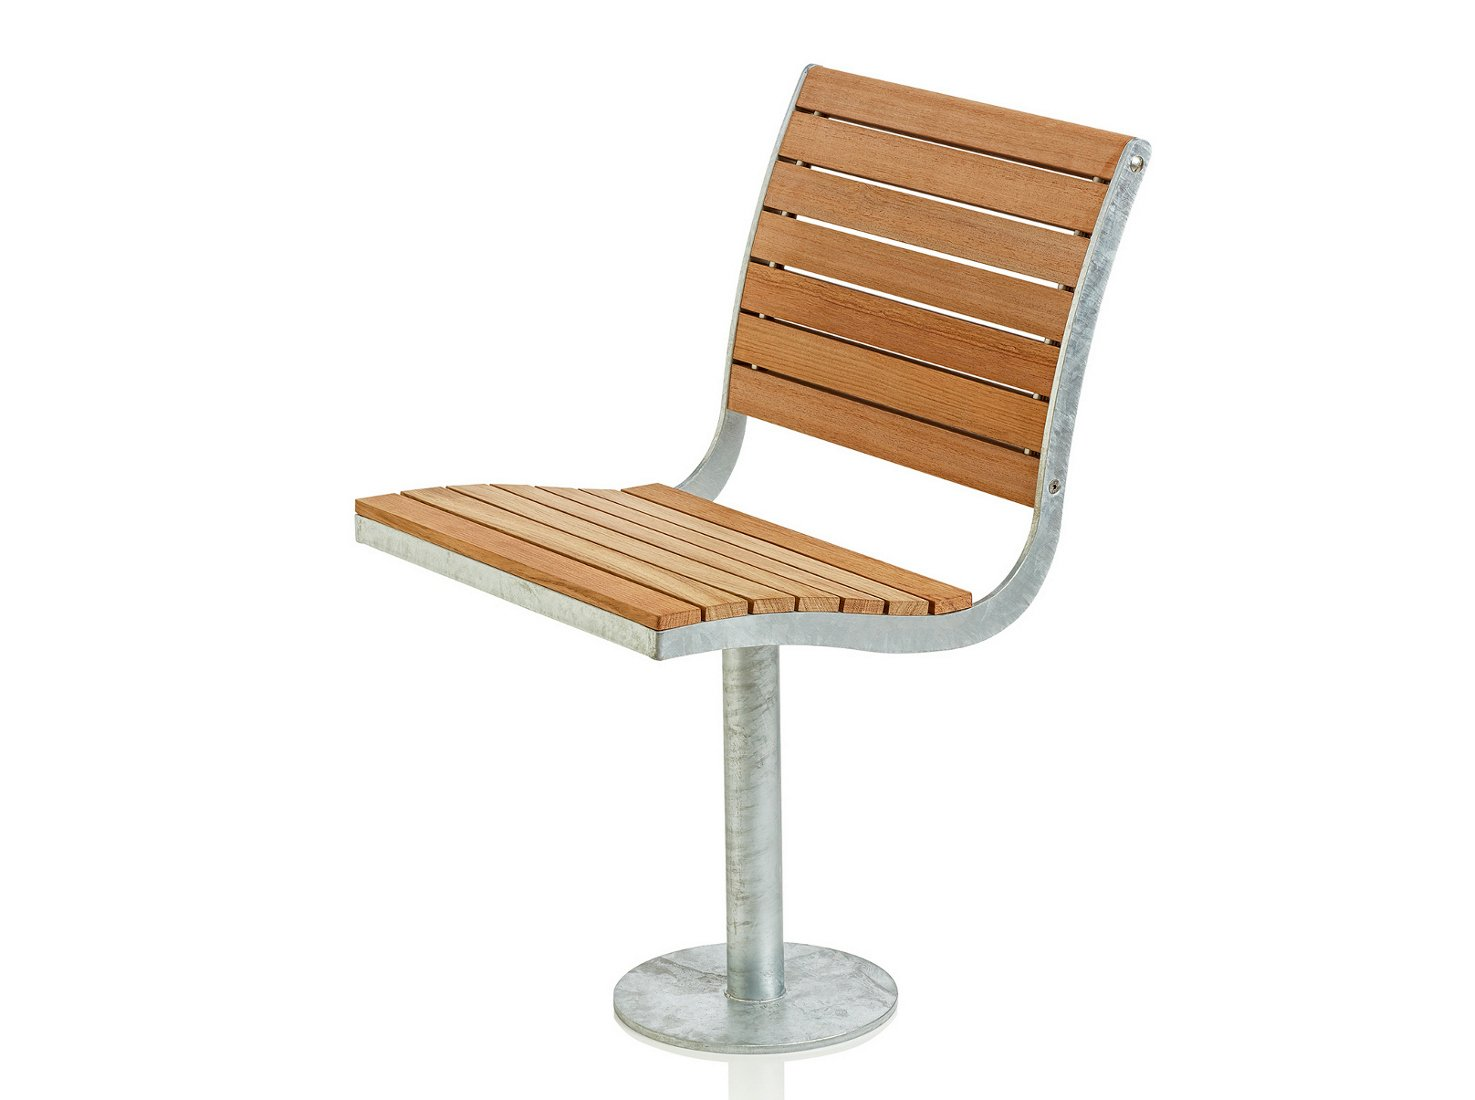 STEEL AND WOOD OUTDOOR CHAIR PARCO COLLECTION BY NOLA INDUSTRIER